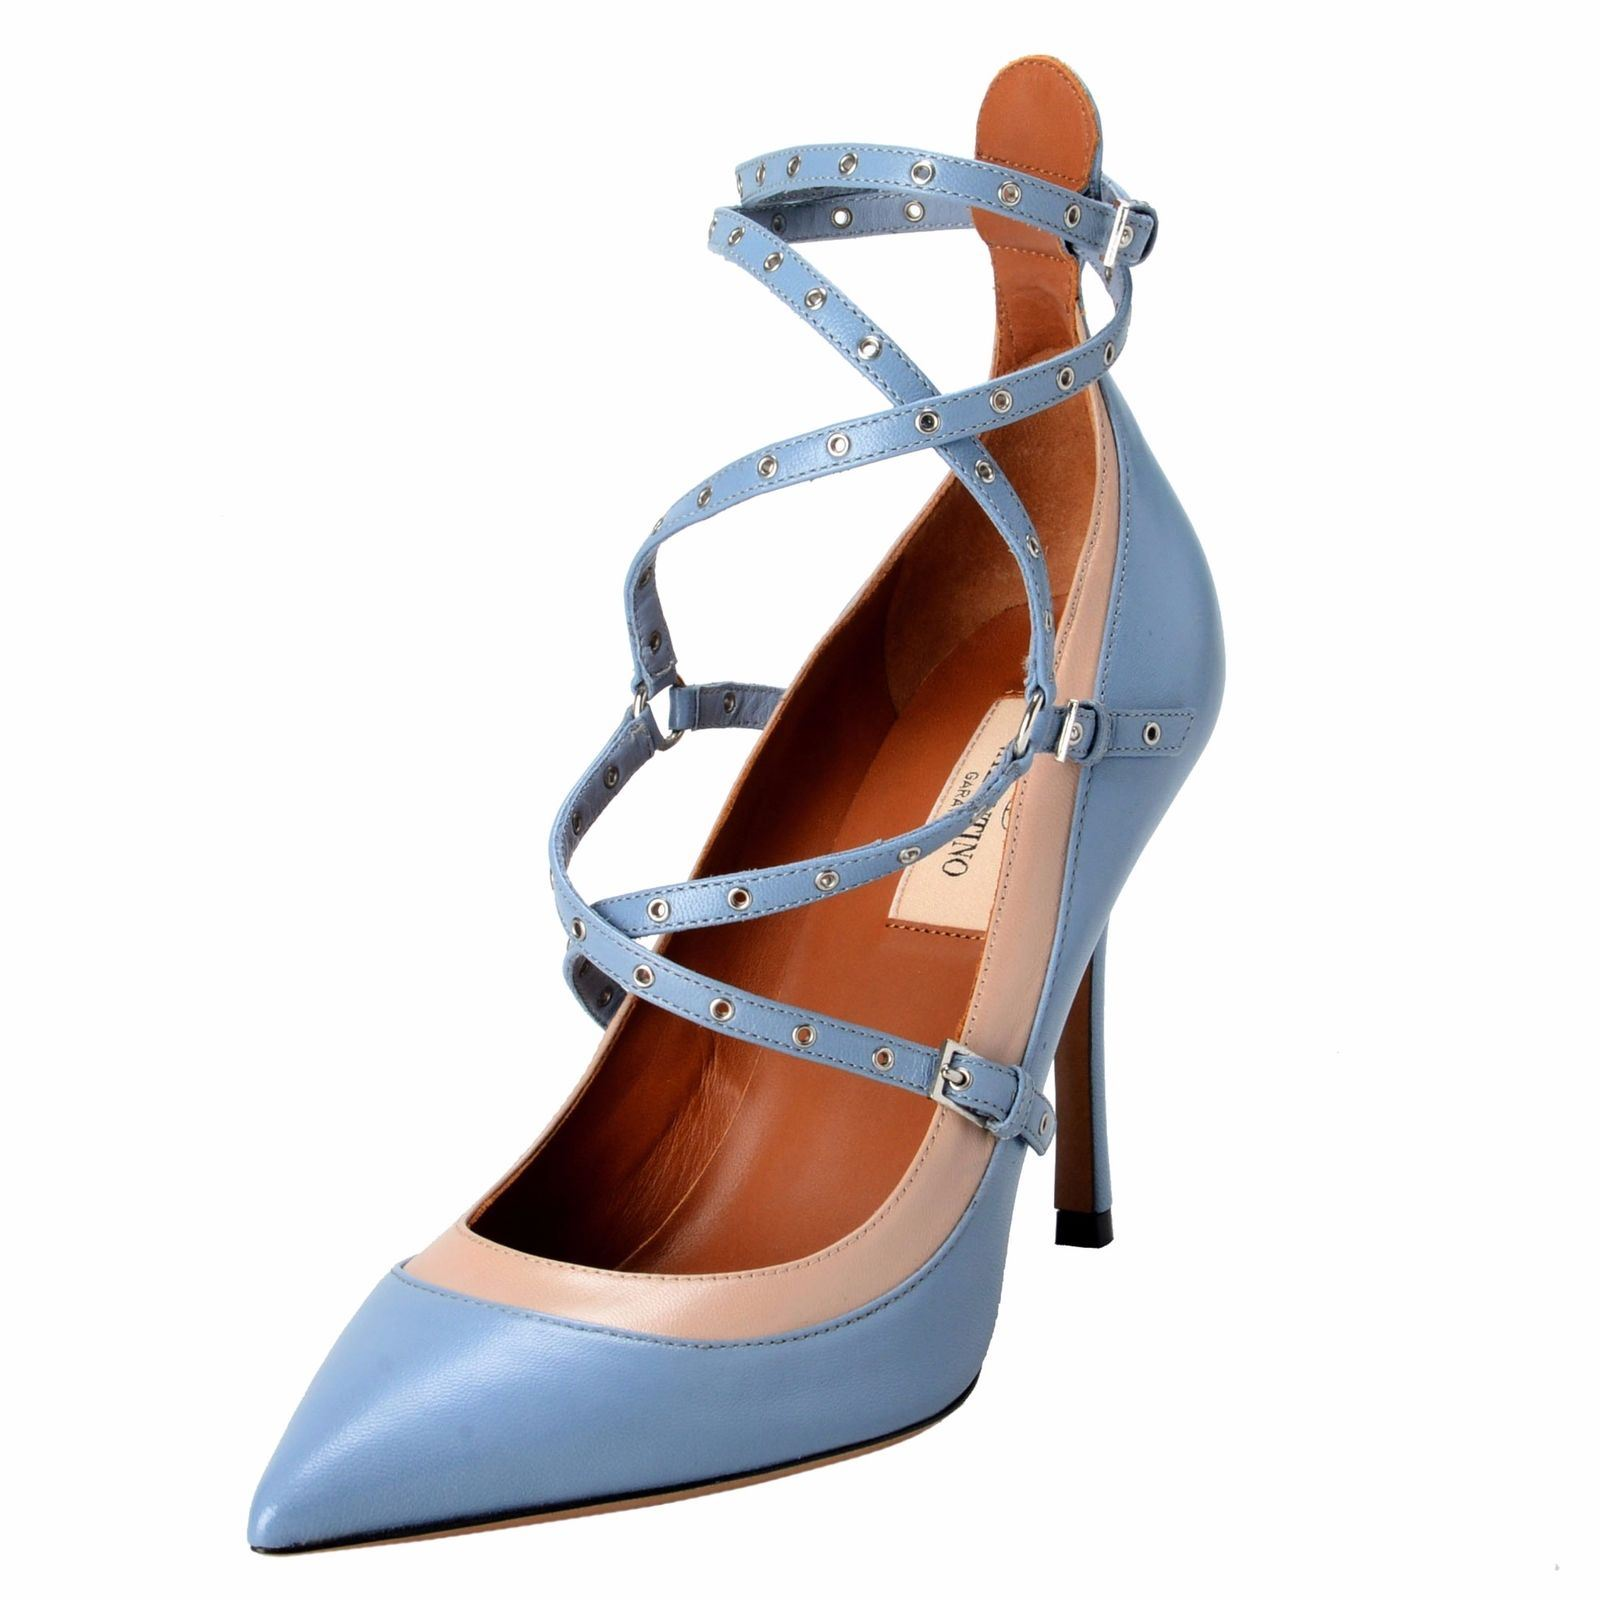 a8fb1caac12 Details about Valentino Garavani Women s Leather Two Tones Ankle Strap High  Heels Shoes